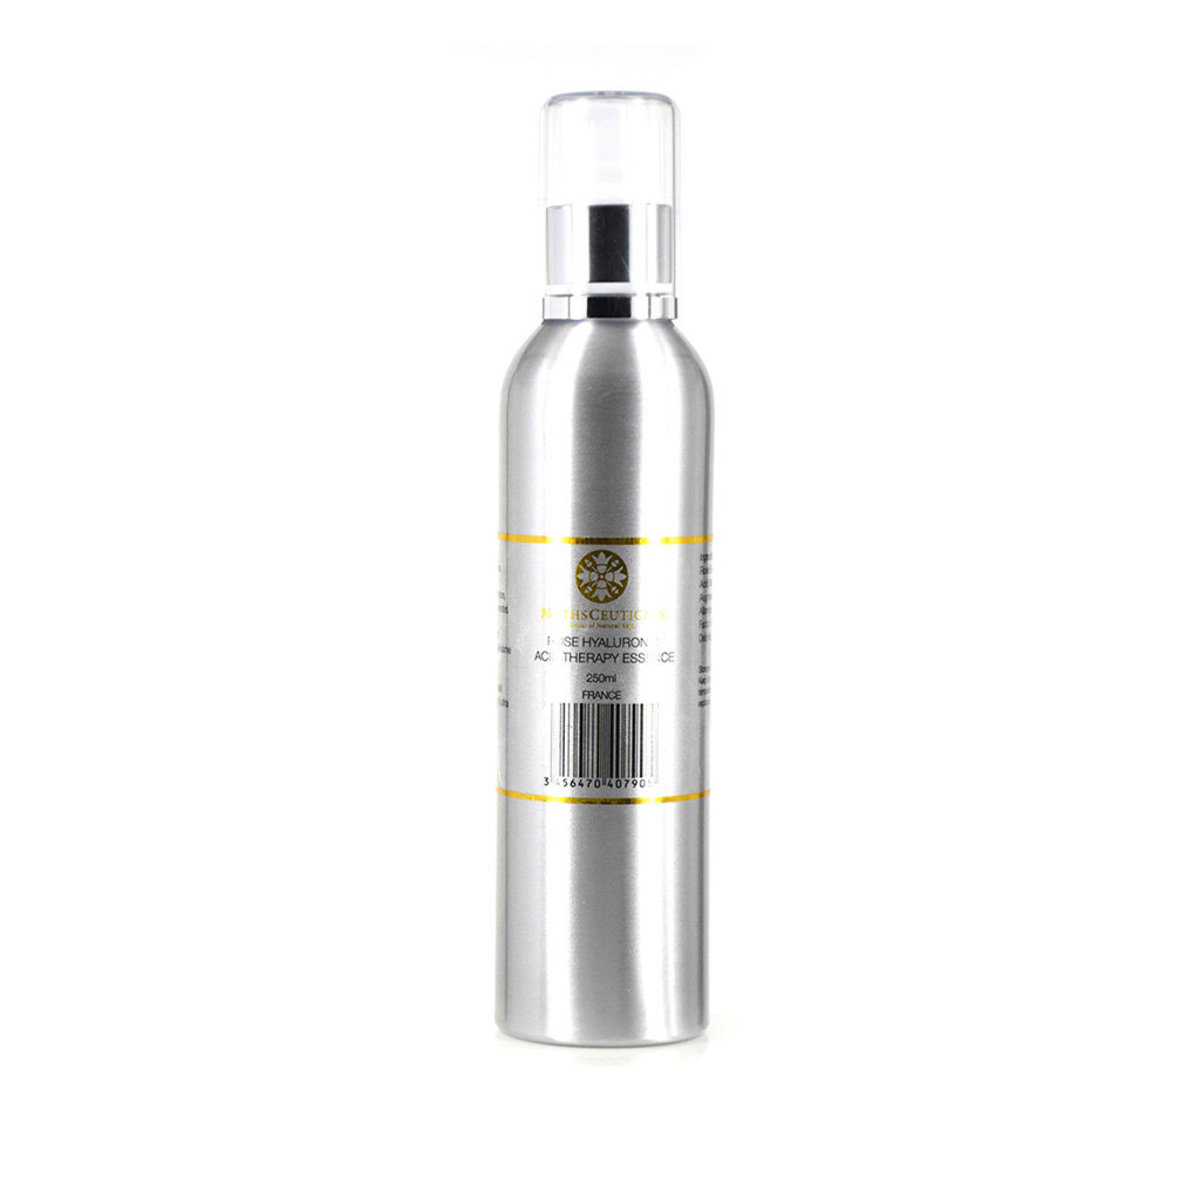 ROSE HYALURONIC ACID THERAPY ESSENCE 250ml